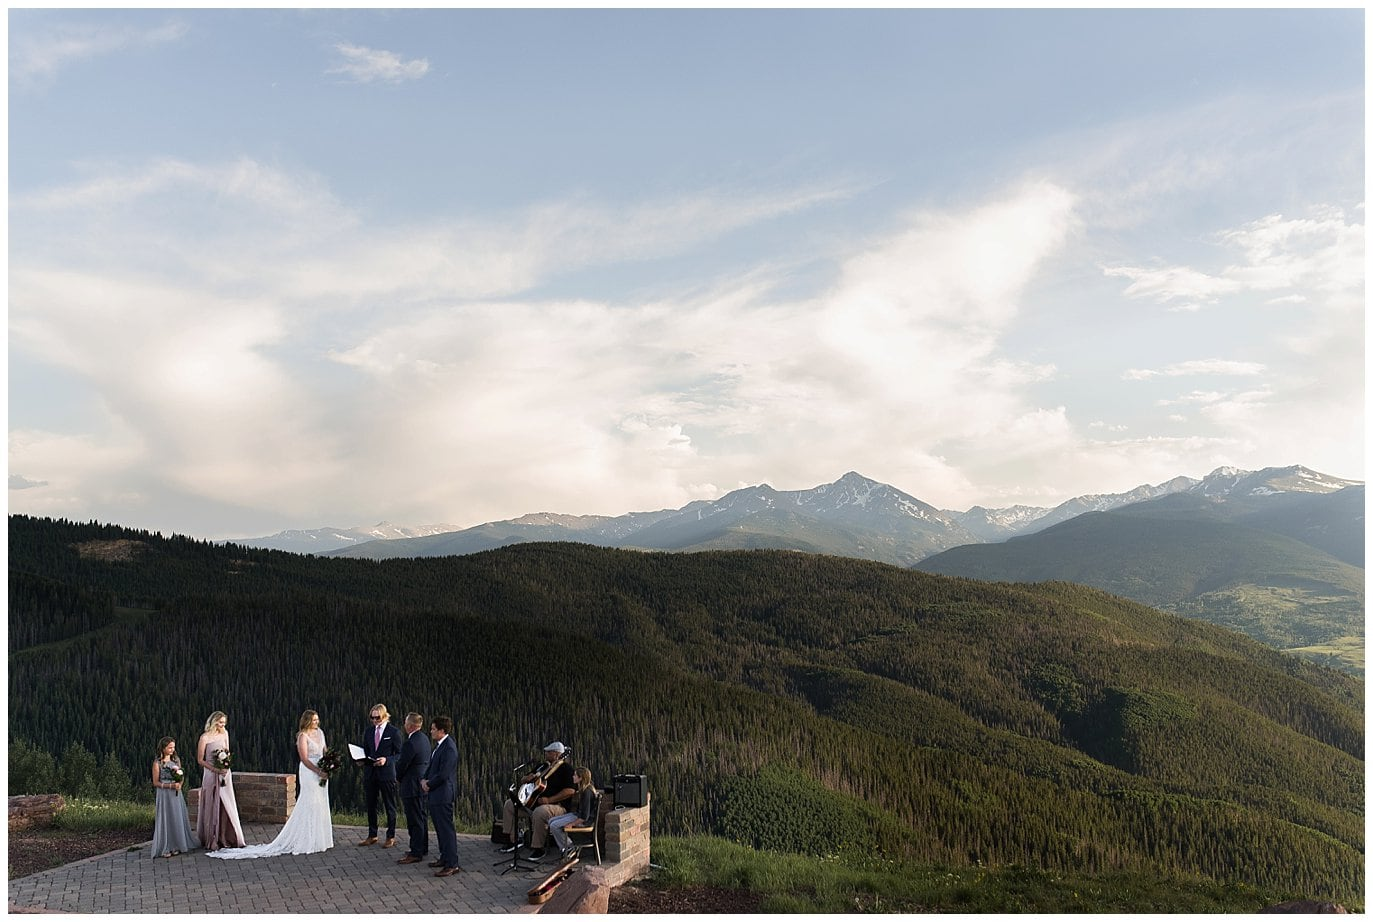 intimate wedding ceremony at mountaintop summer wedding in Vail Colorado by Colorado wedding photographer Jennie Crate